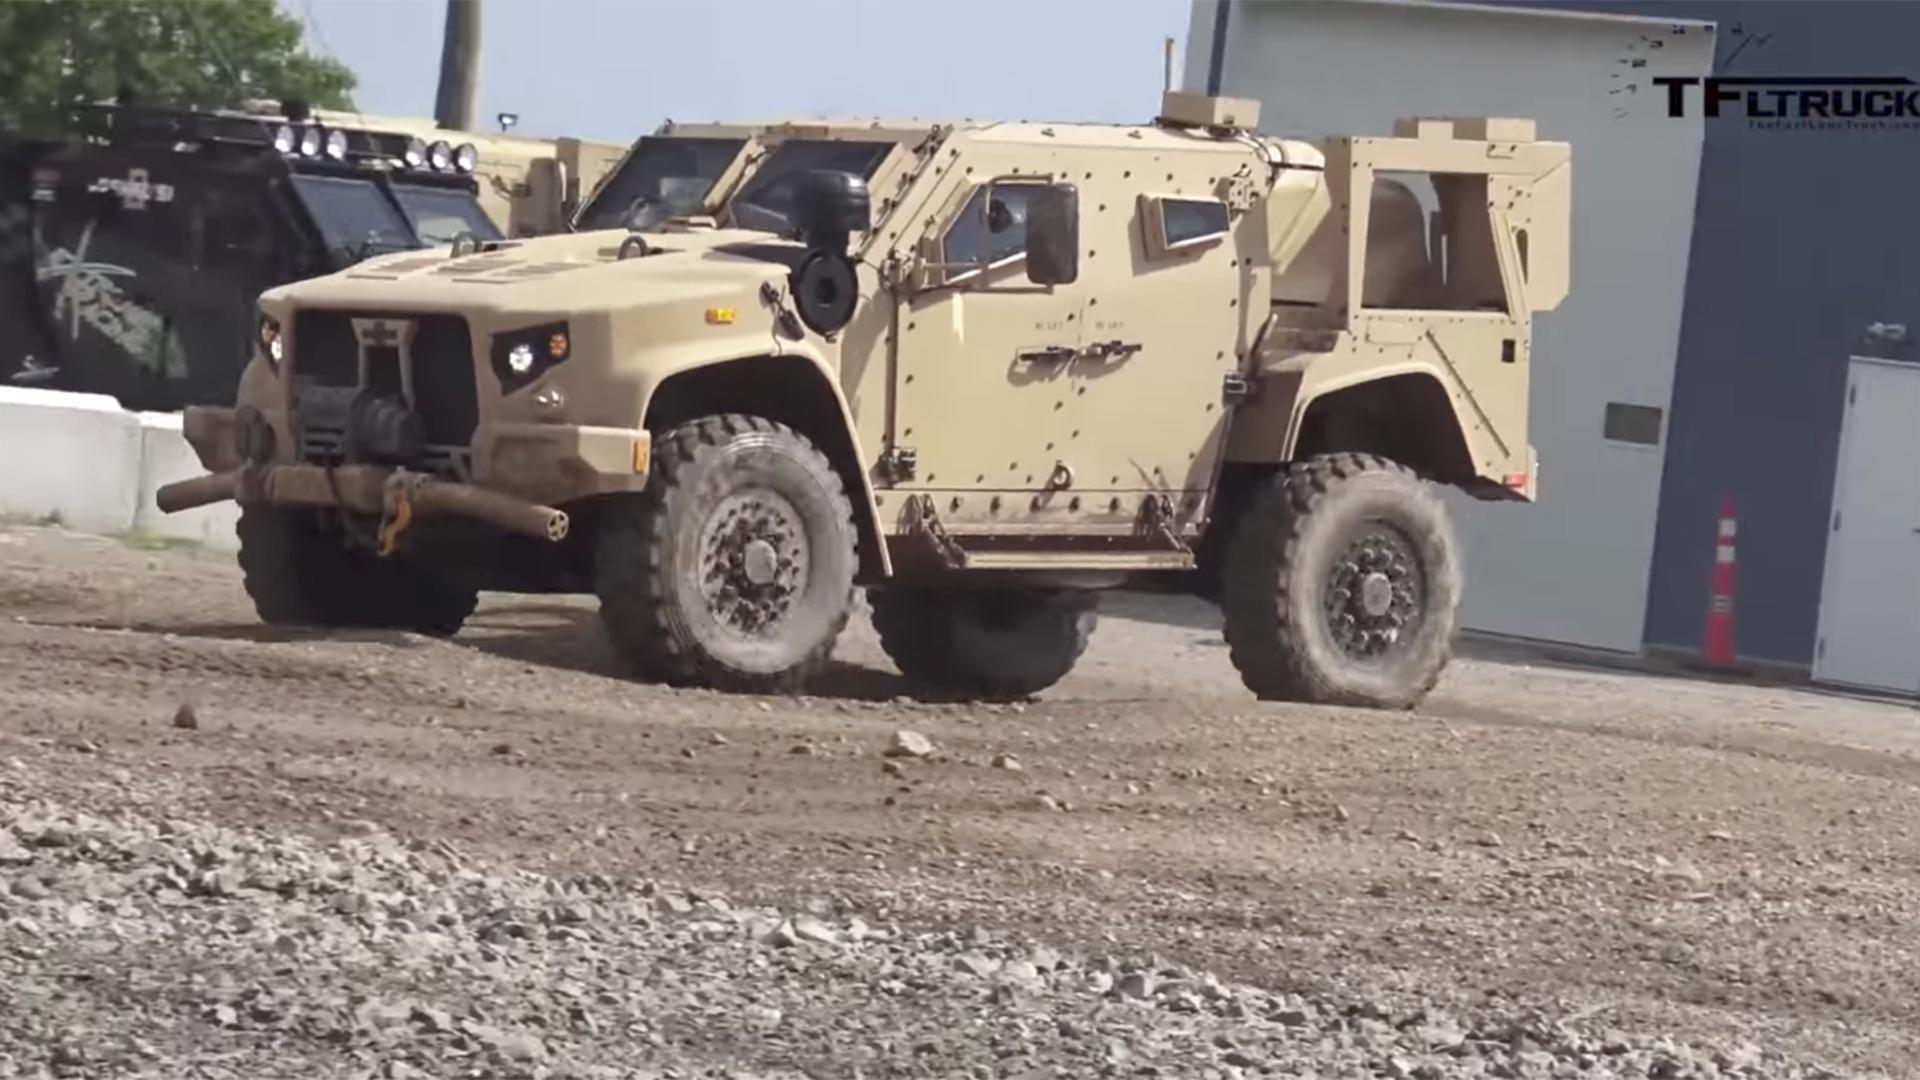 Oshkosh Defense Jltv >> Meet The Jltv The Beastly Replacement For The Humvee